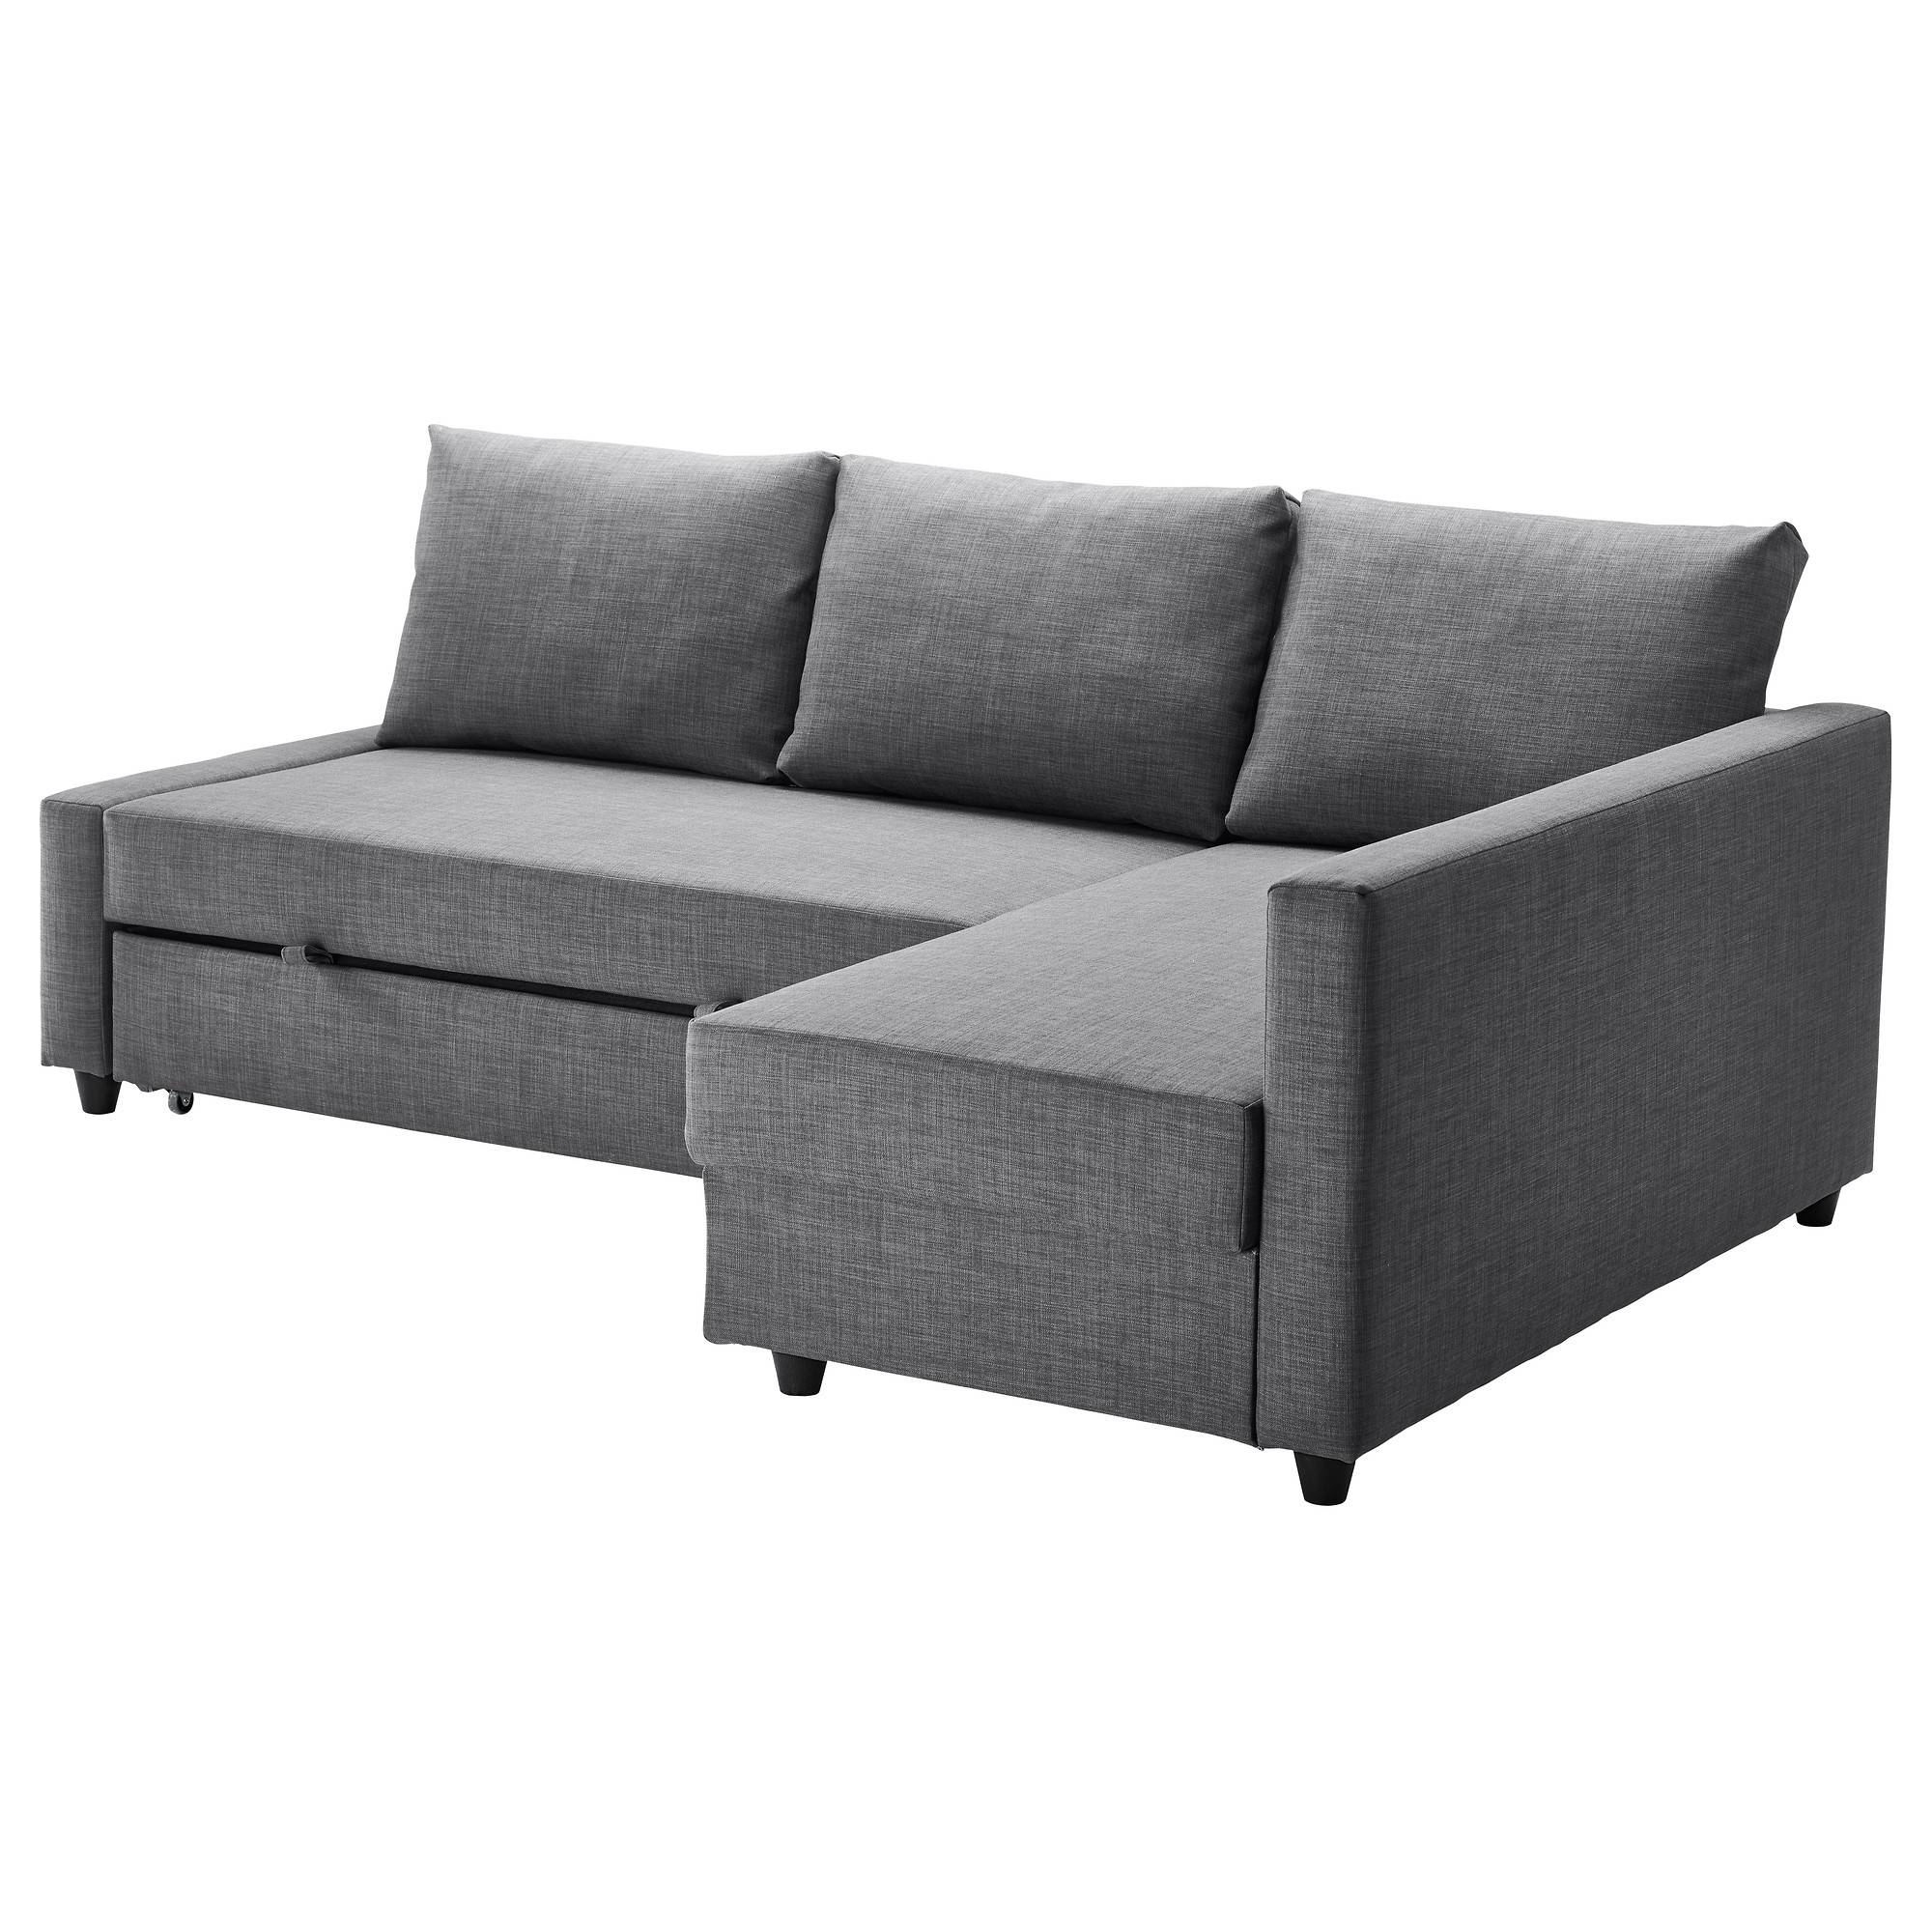 Friheten Corner Sofa Bed With Storage Skiftebo Dark Grey – Ikea Pertaining To Sofa Beds Chairs (View 6 of 15)